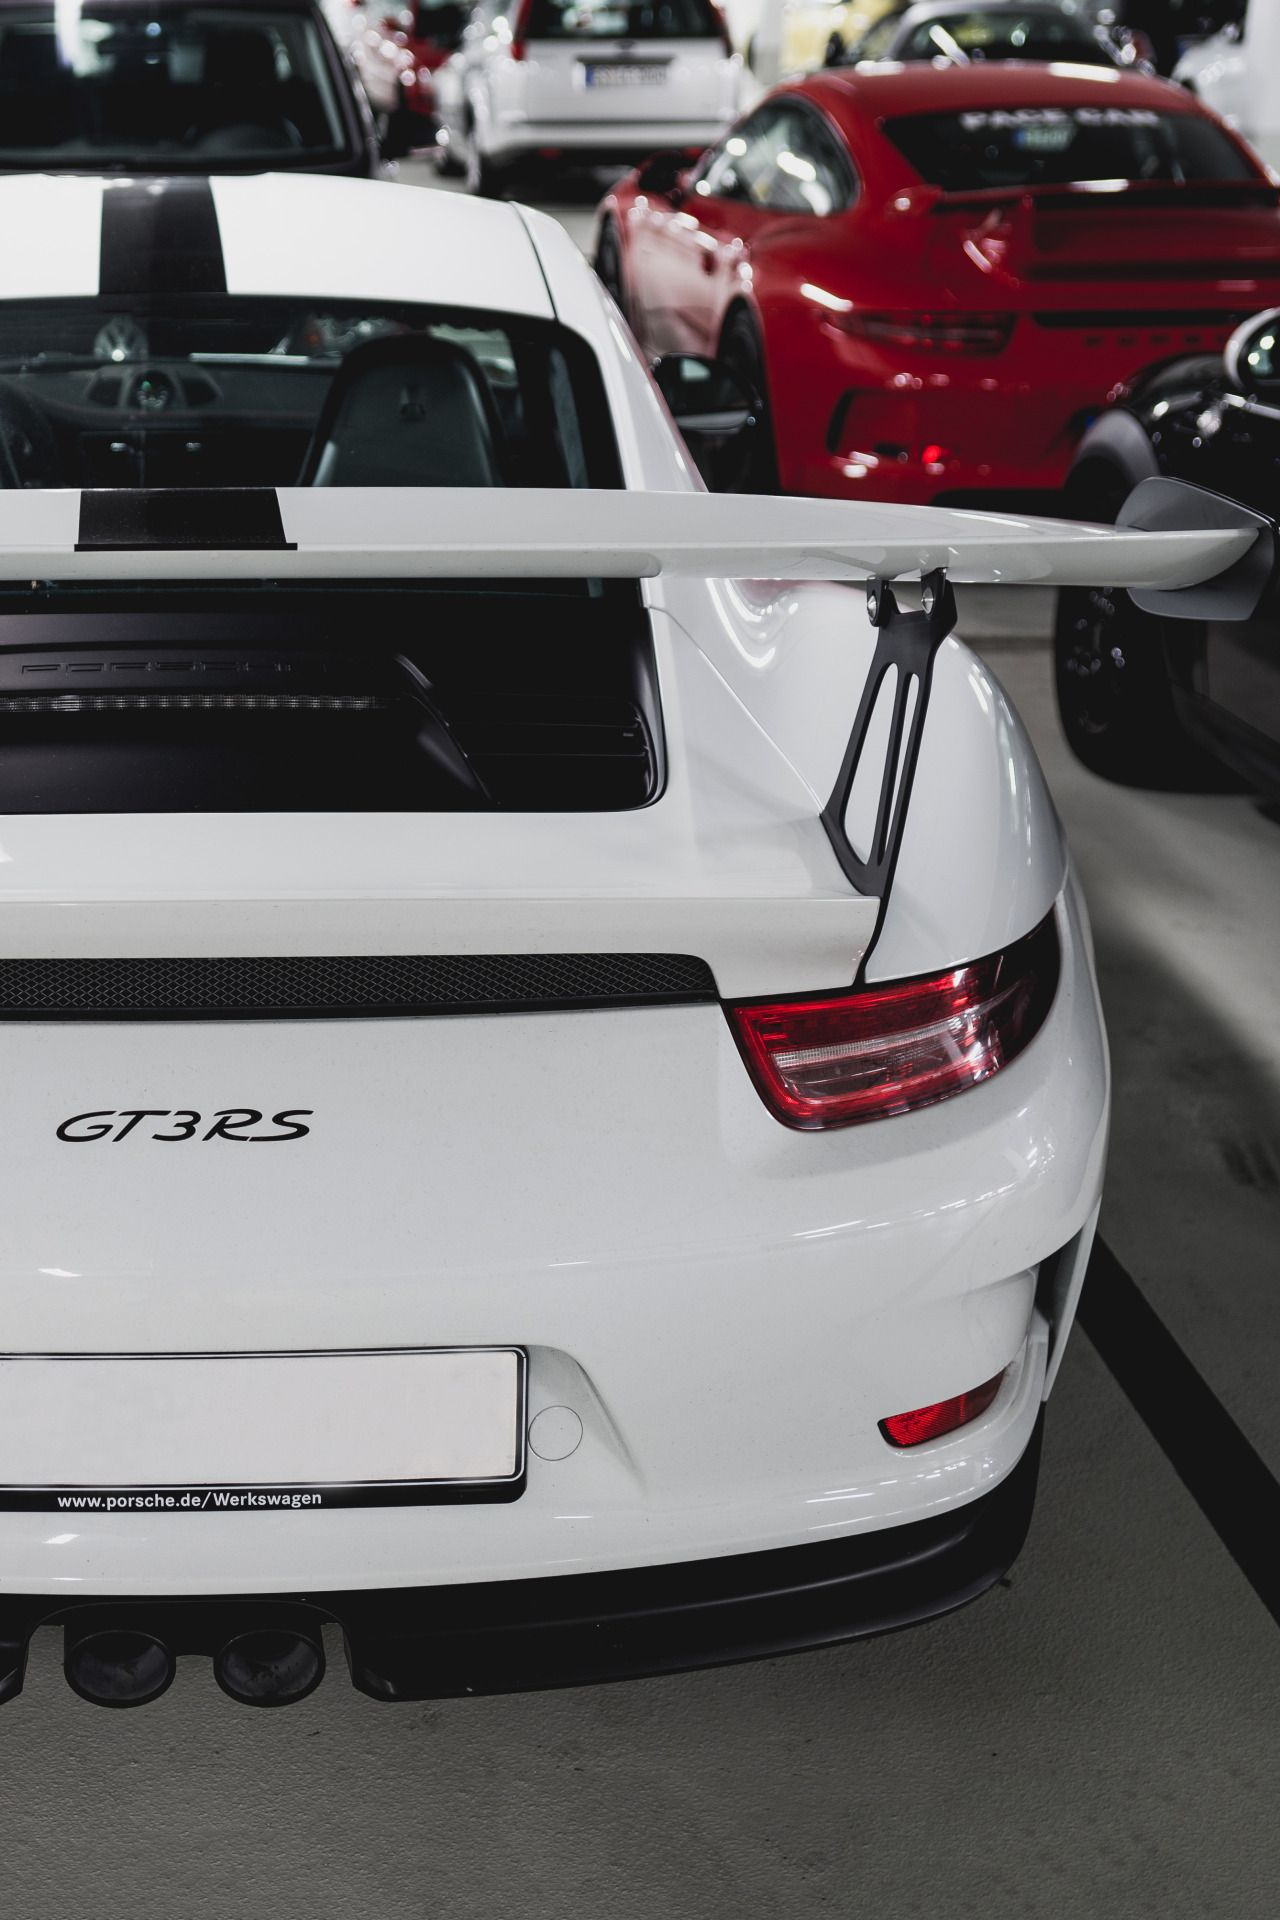 adornstudio: GT3RS | Photographer